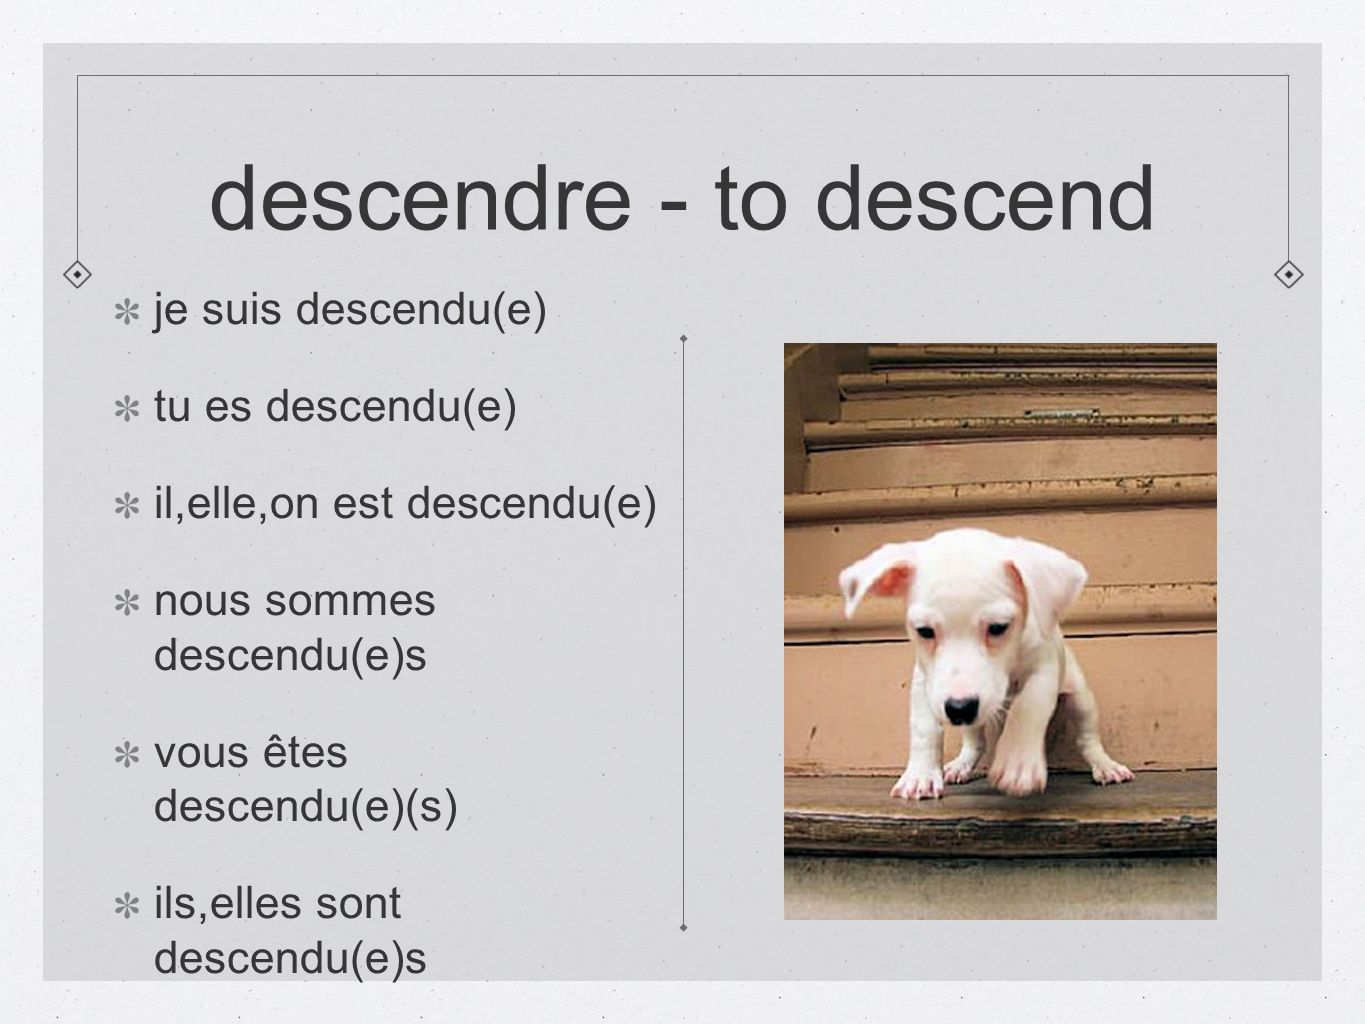 descendre - to descend je suis descendu(e) tu es descendu(e)